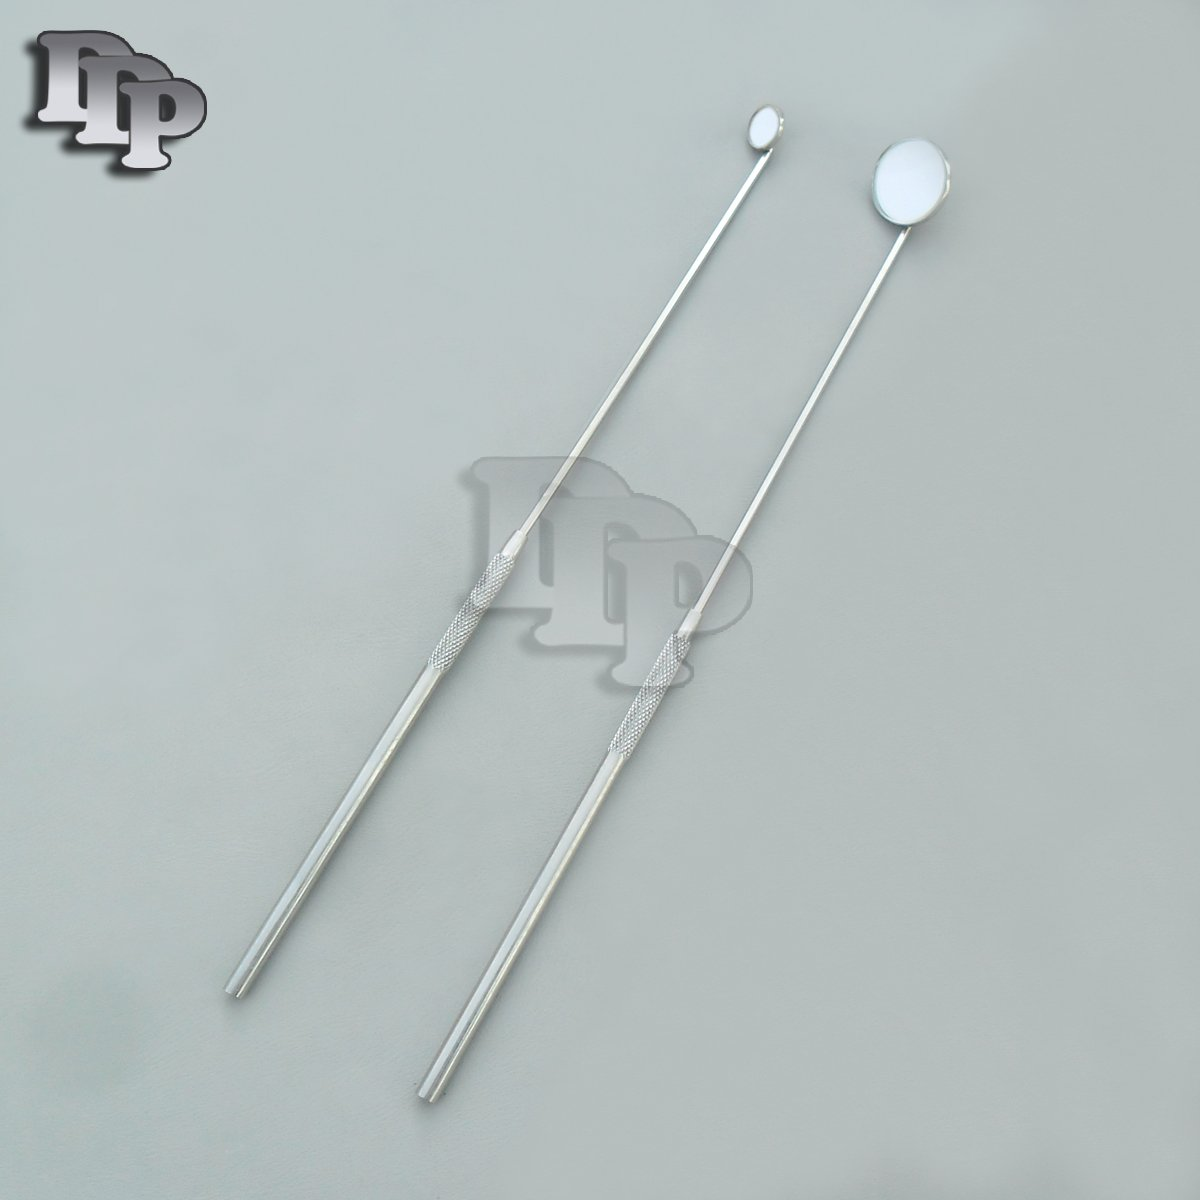 Set of 2 LARYNGEAL BOILABLE Hygiene Dental Mirrors with Handle #0#4 (DDP Quality)